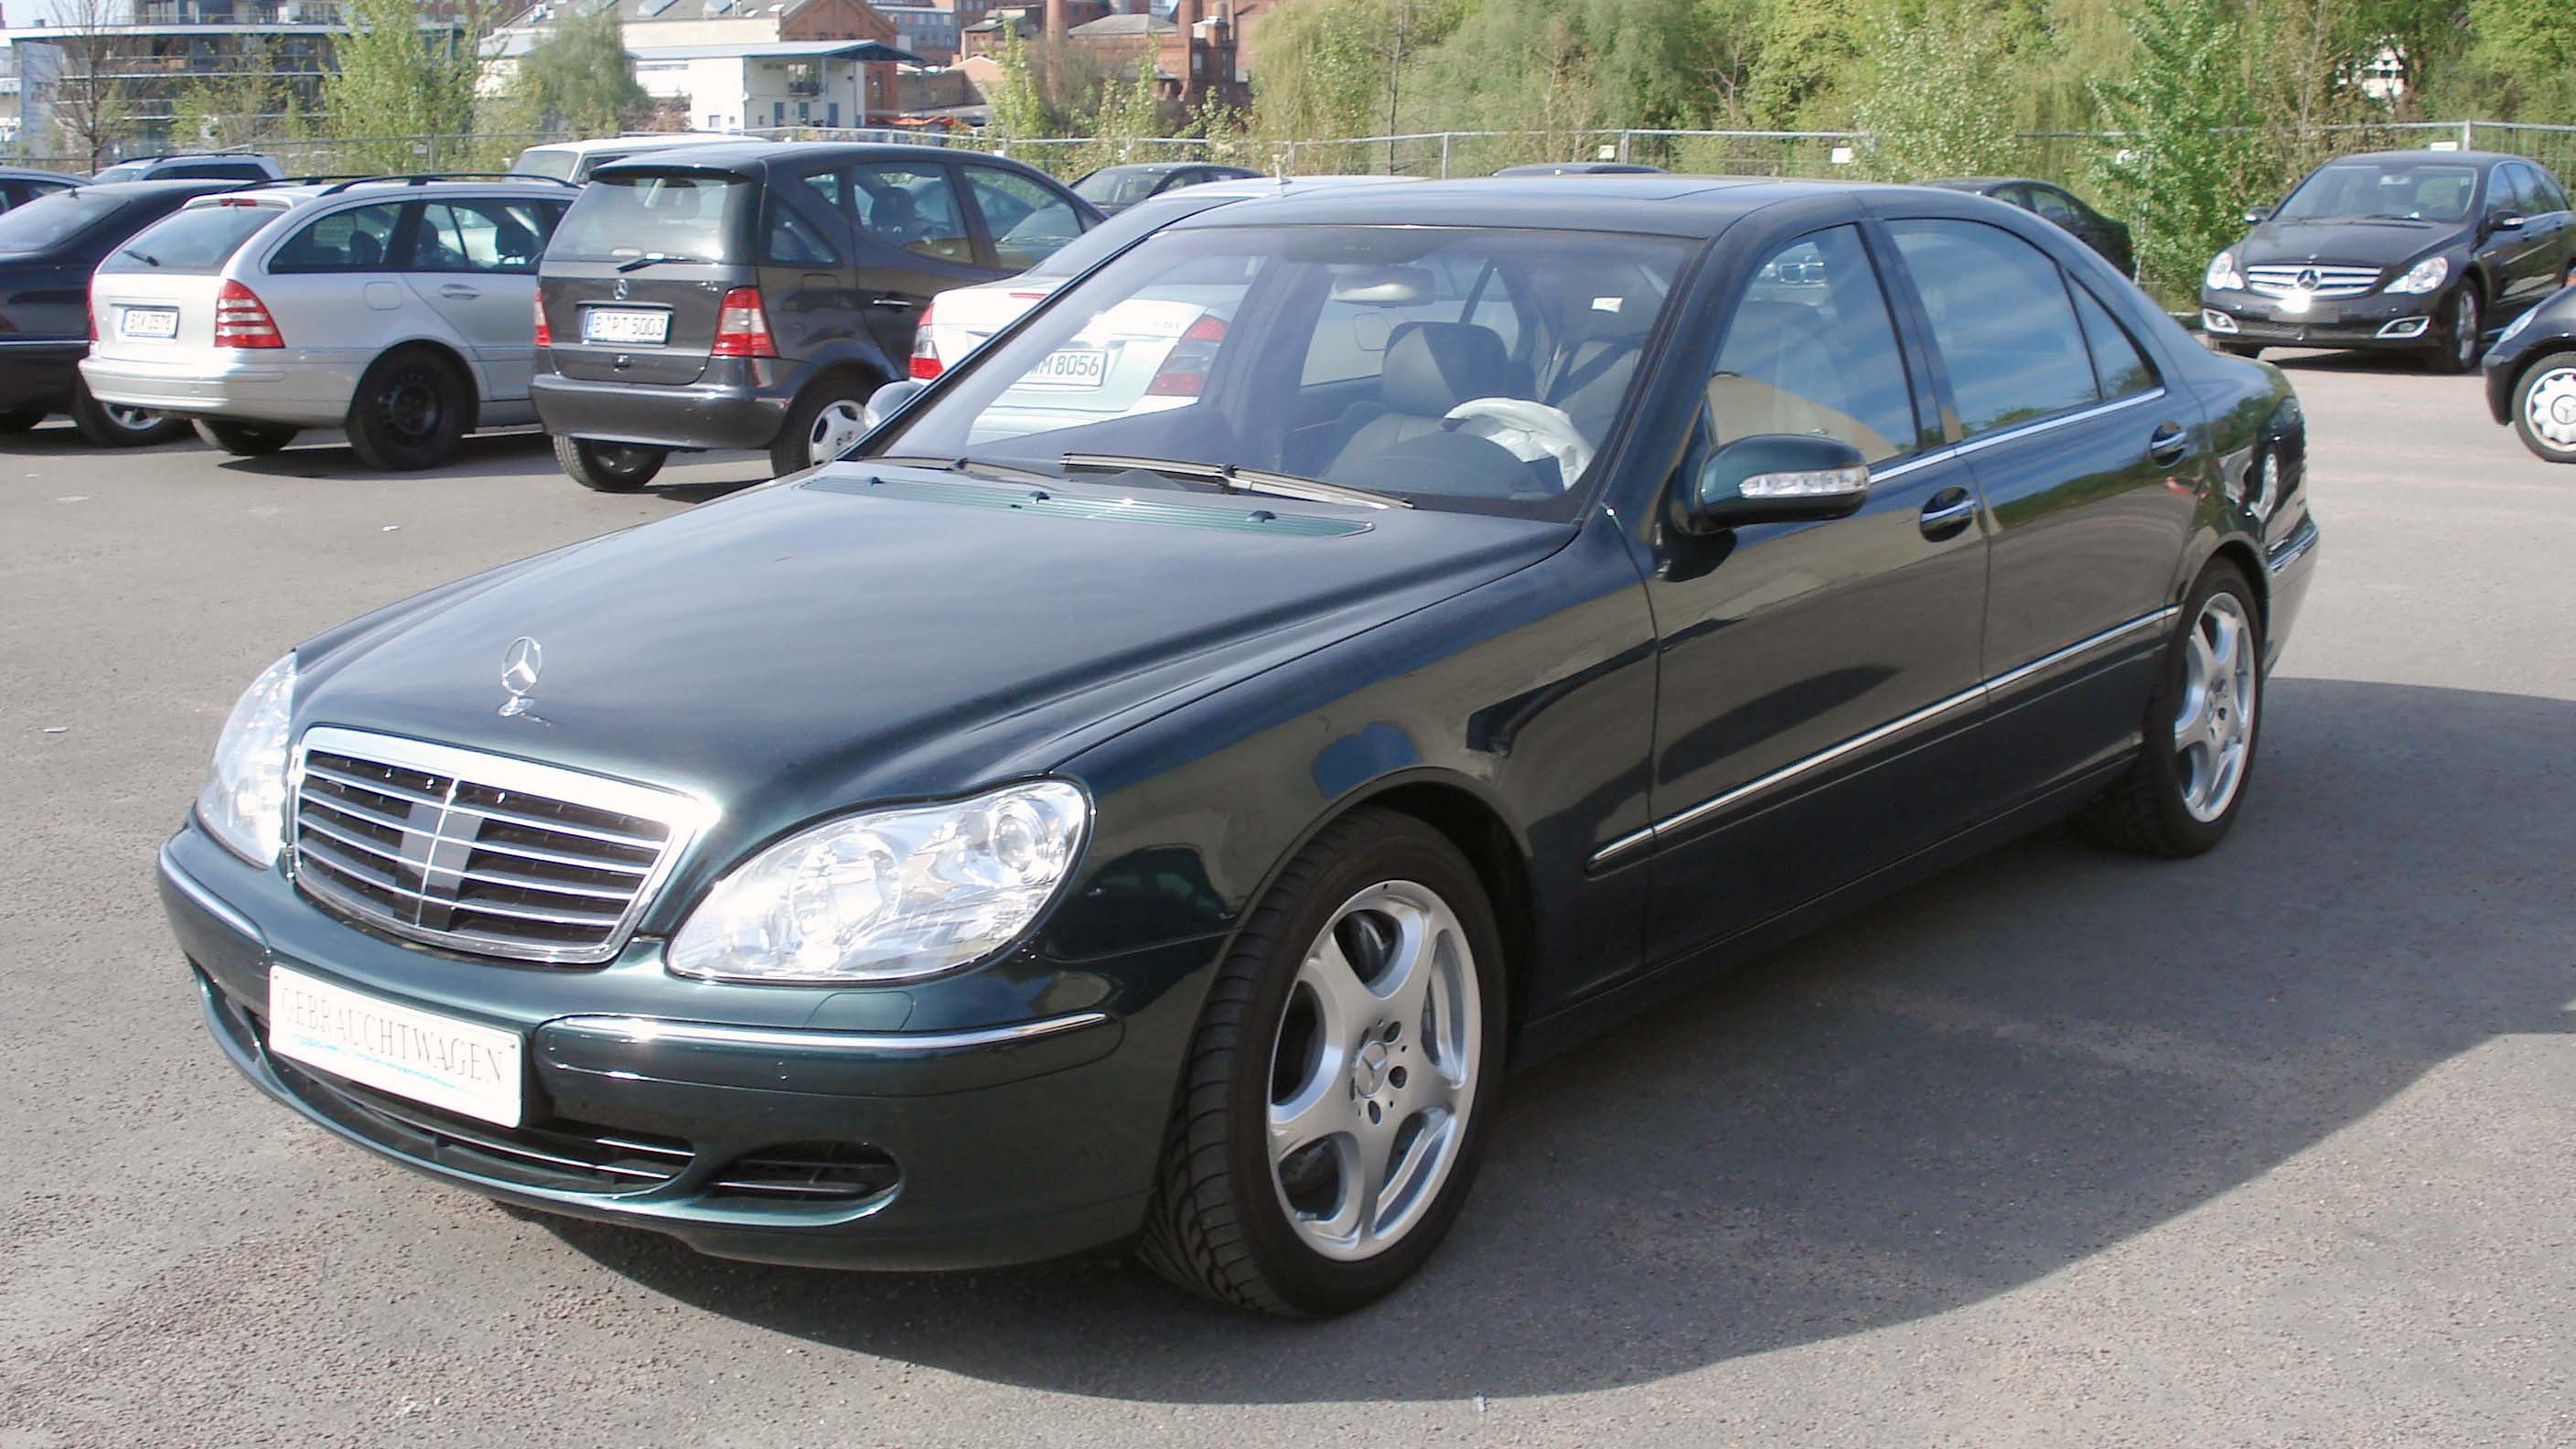 Grille forums for 1999 mercedes benz s320 problems